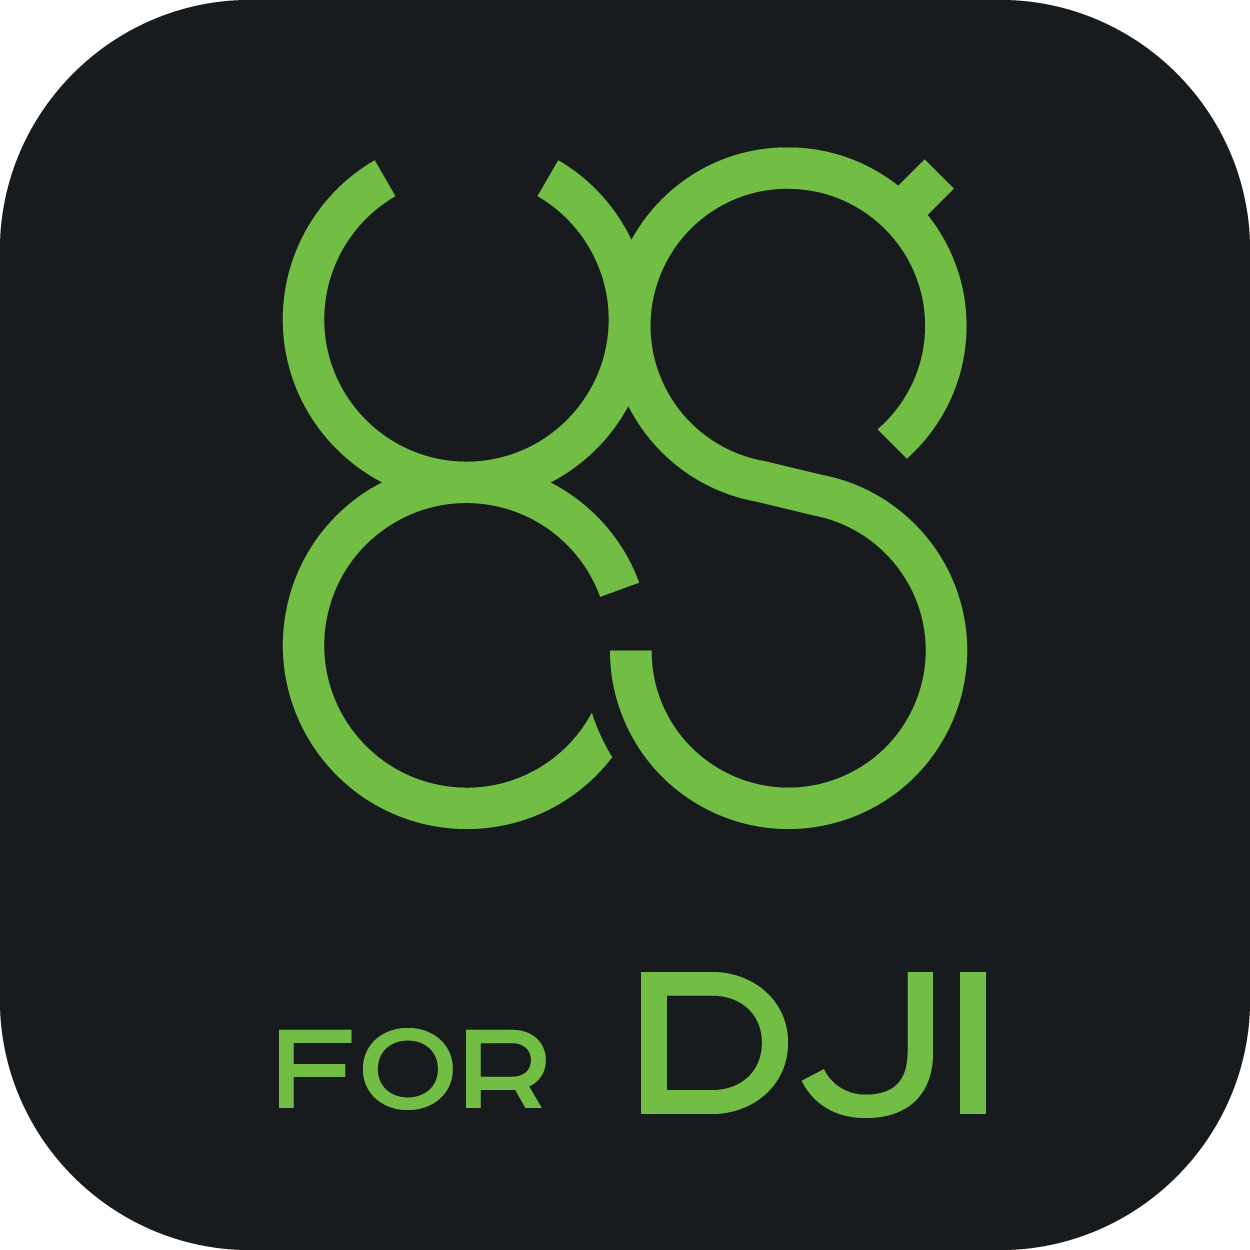 UgCS for DJI version 2.6 (59)